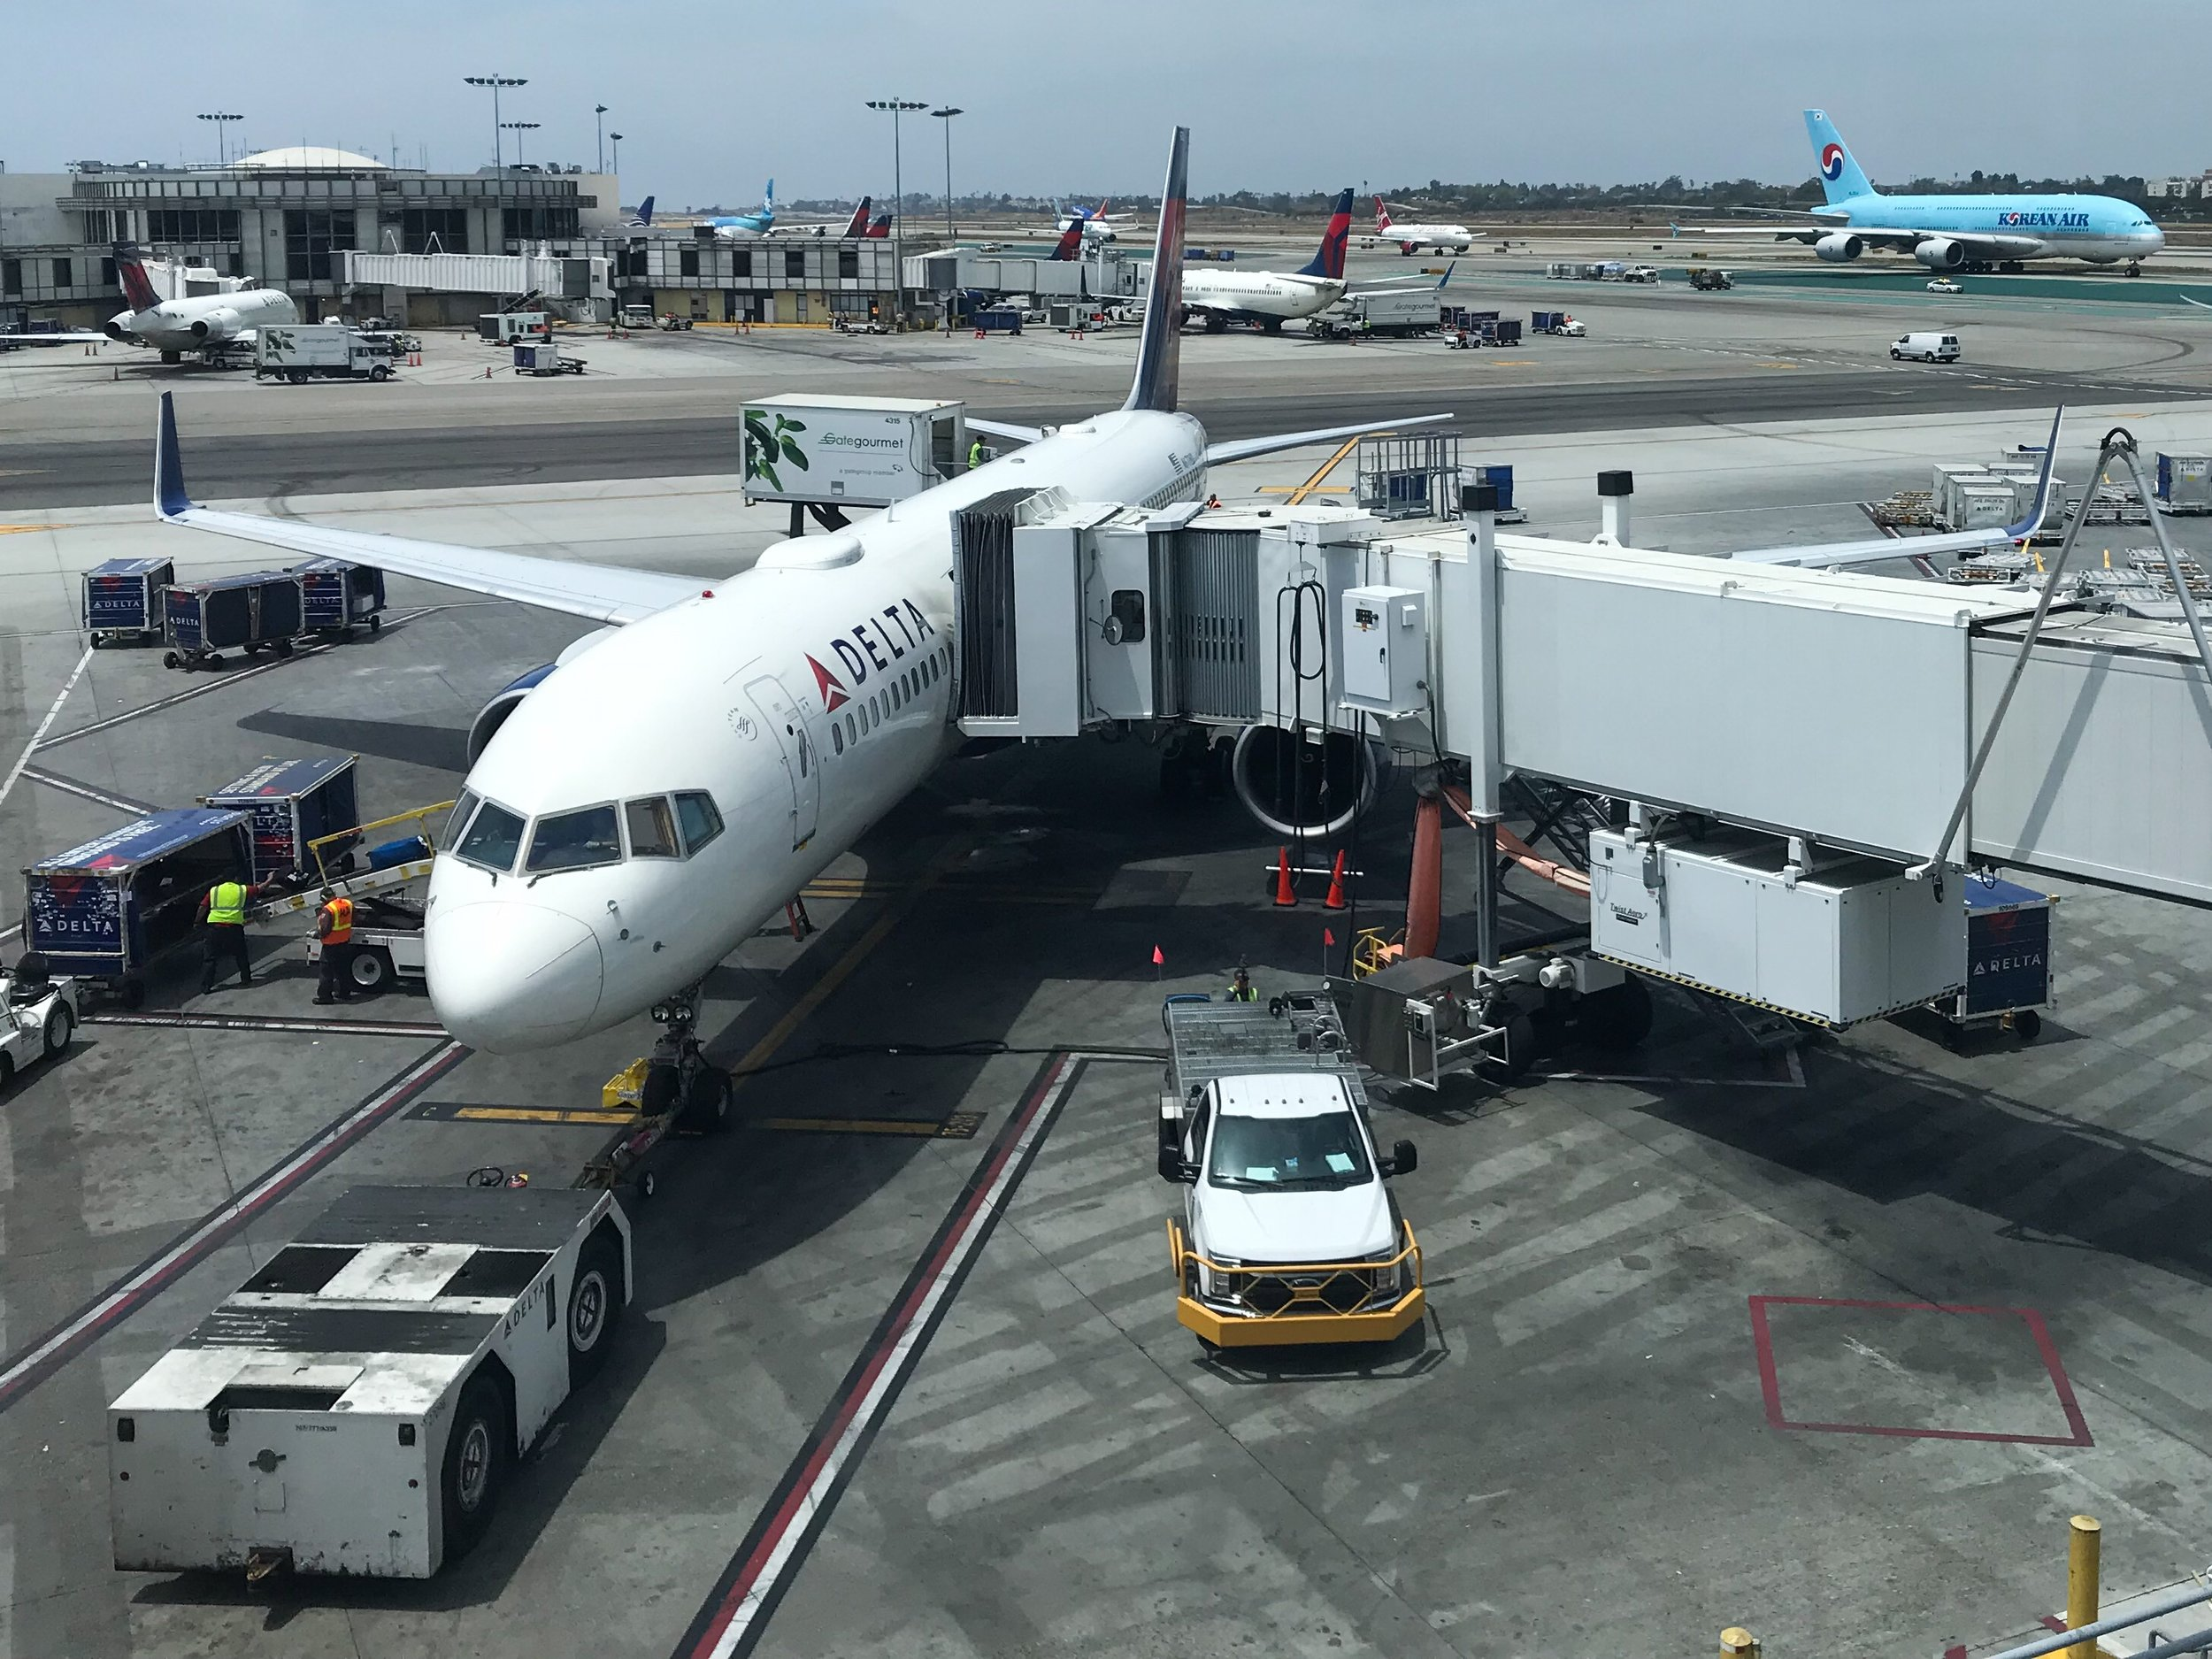 My 757-200 (75D) to Atlanta at the gate in Los Angeles.